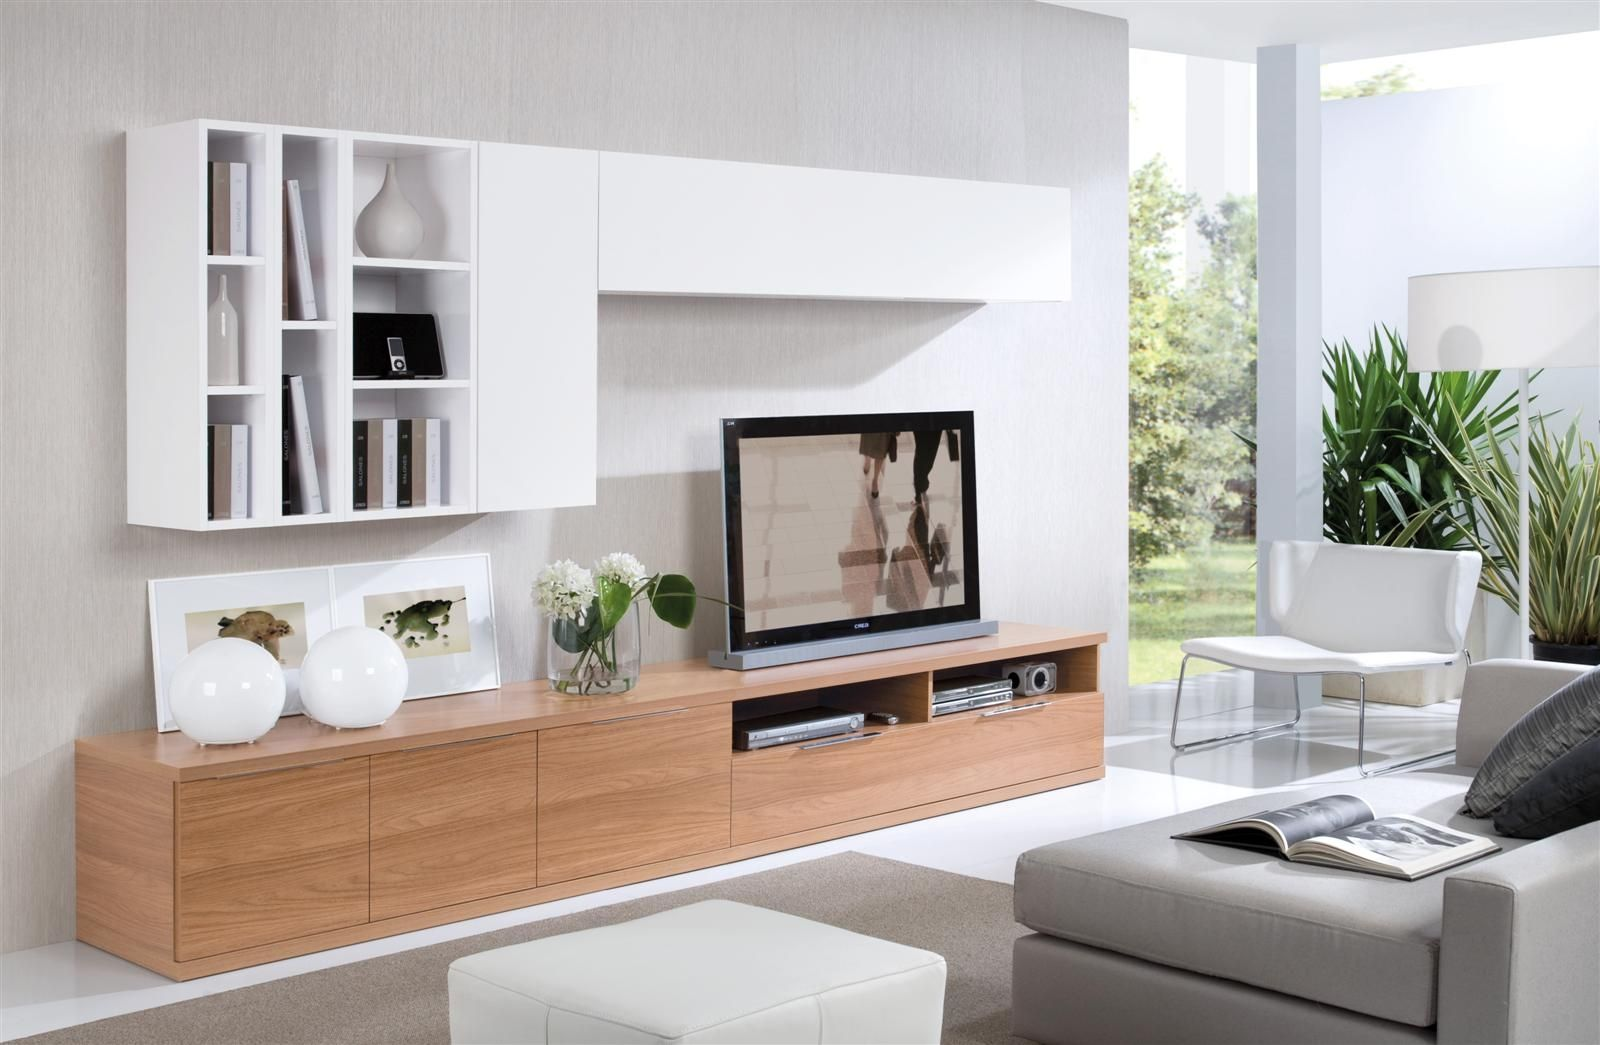 Wall Cabinets Living Room Furniture Sigue Nuestras Ideas Para Organizar Y Decorar Cuarto De Television